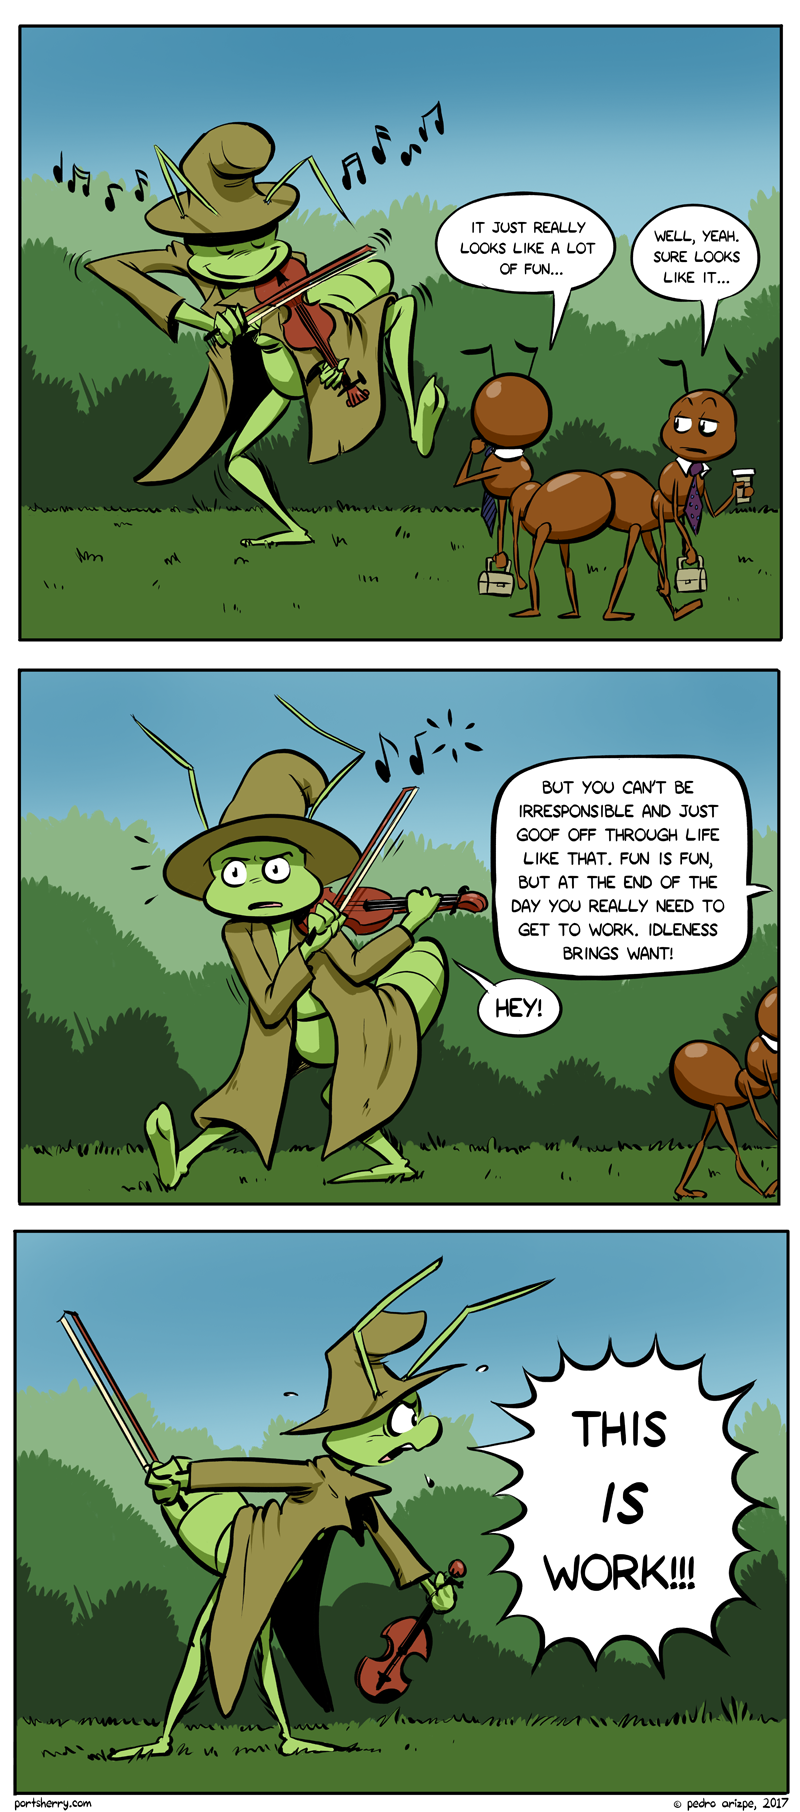 Those useless grasshoppers